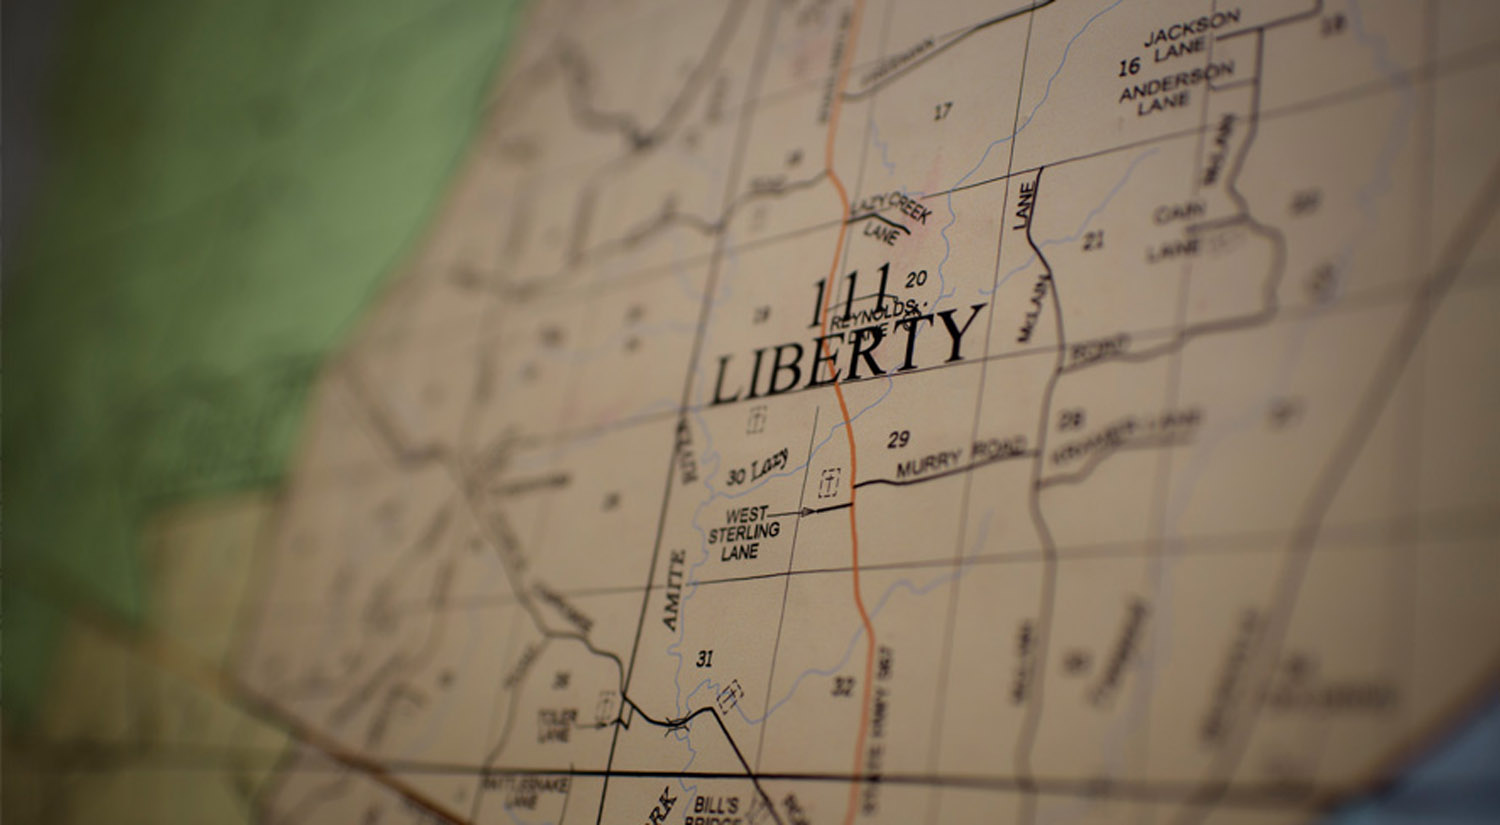 Map shows Liberty, Mississippi